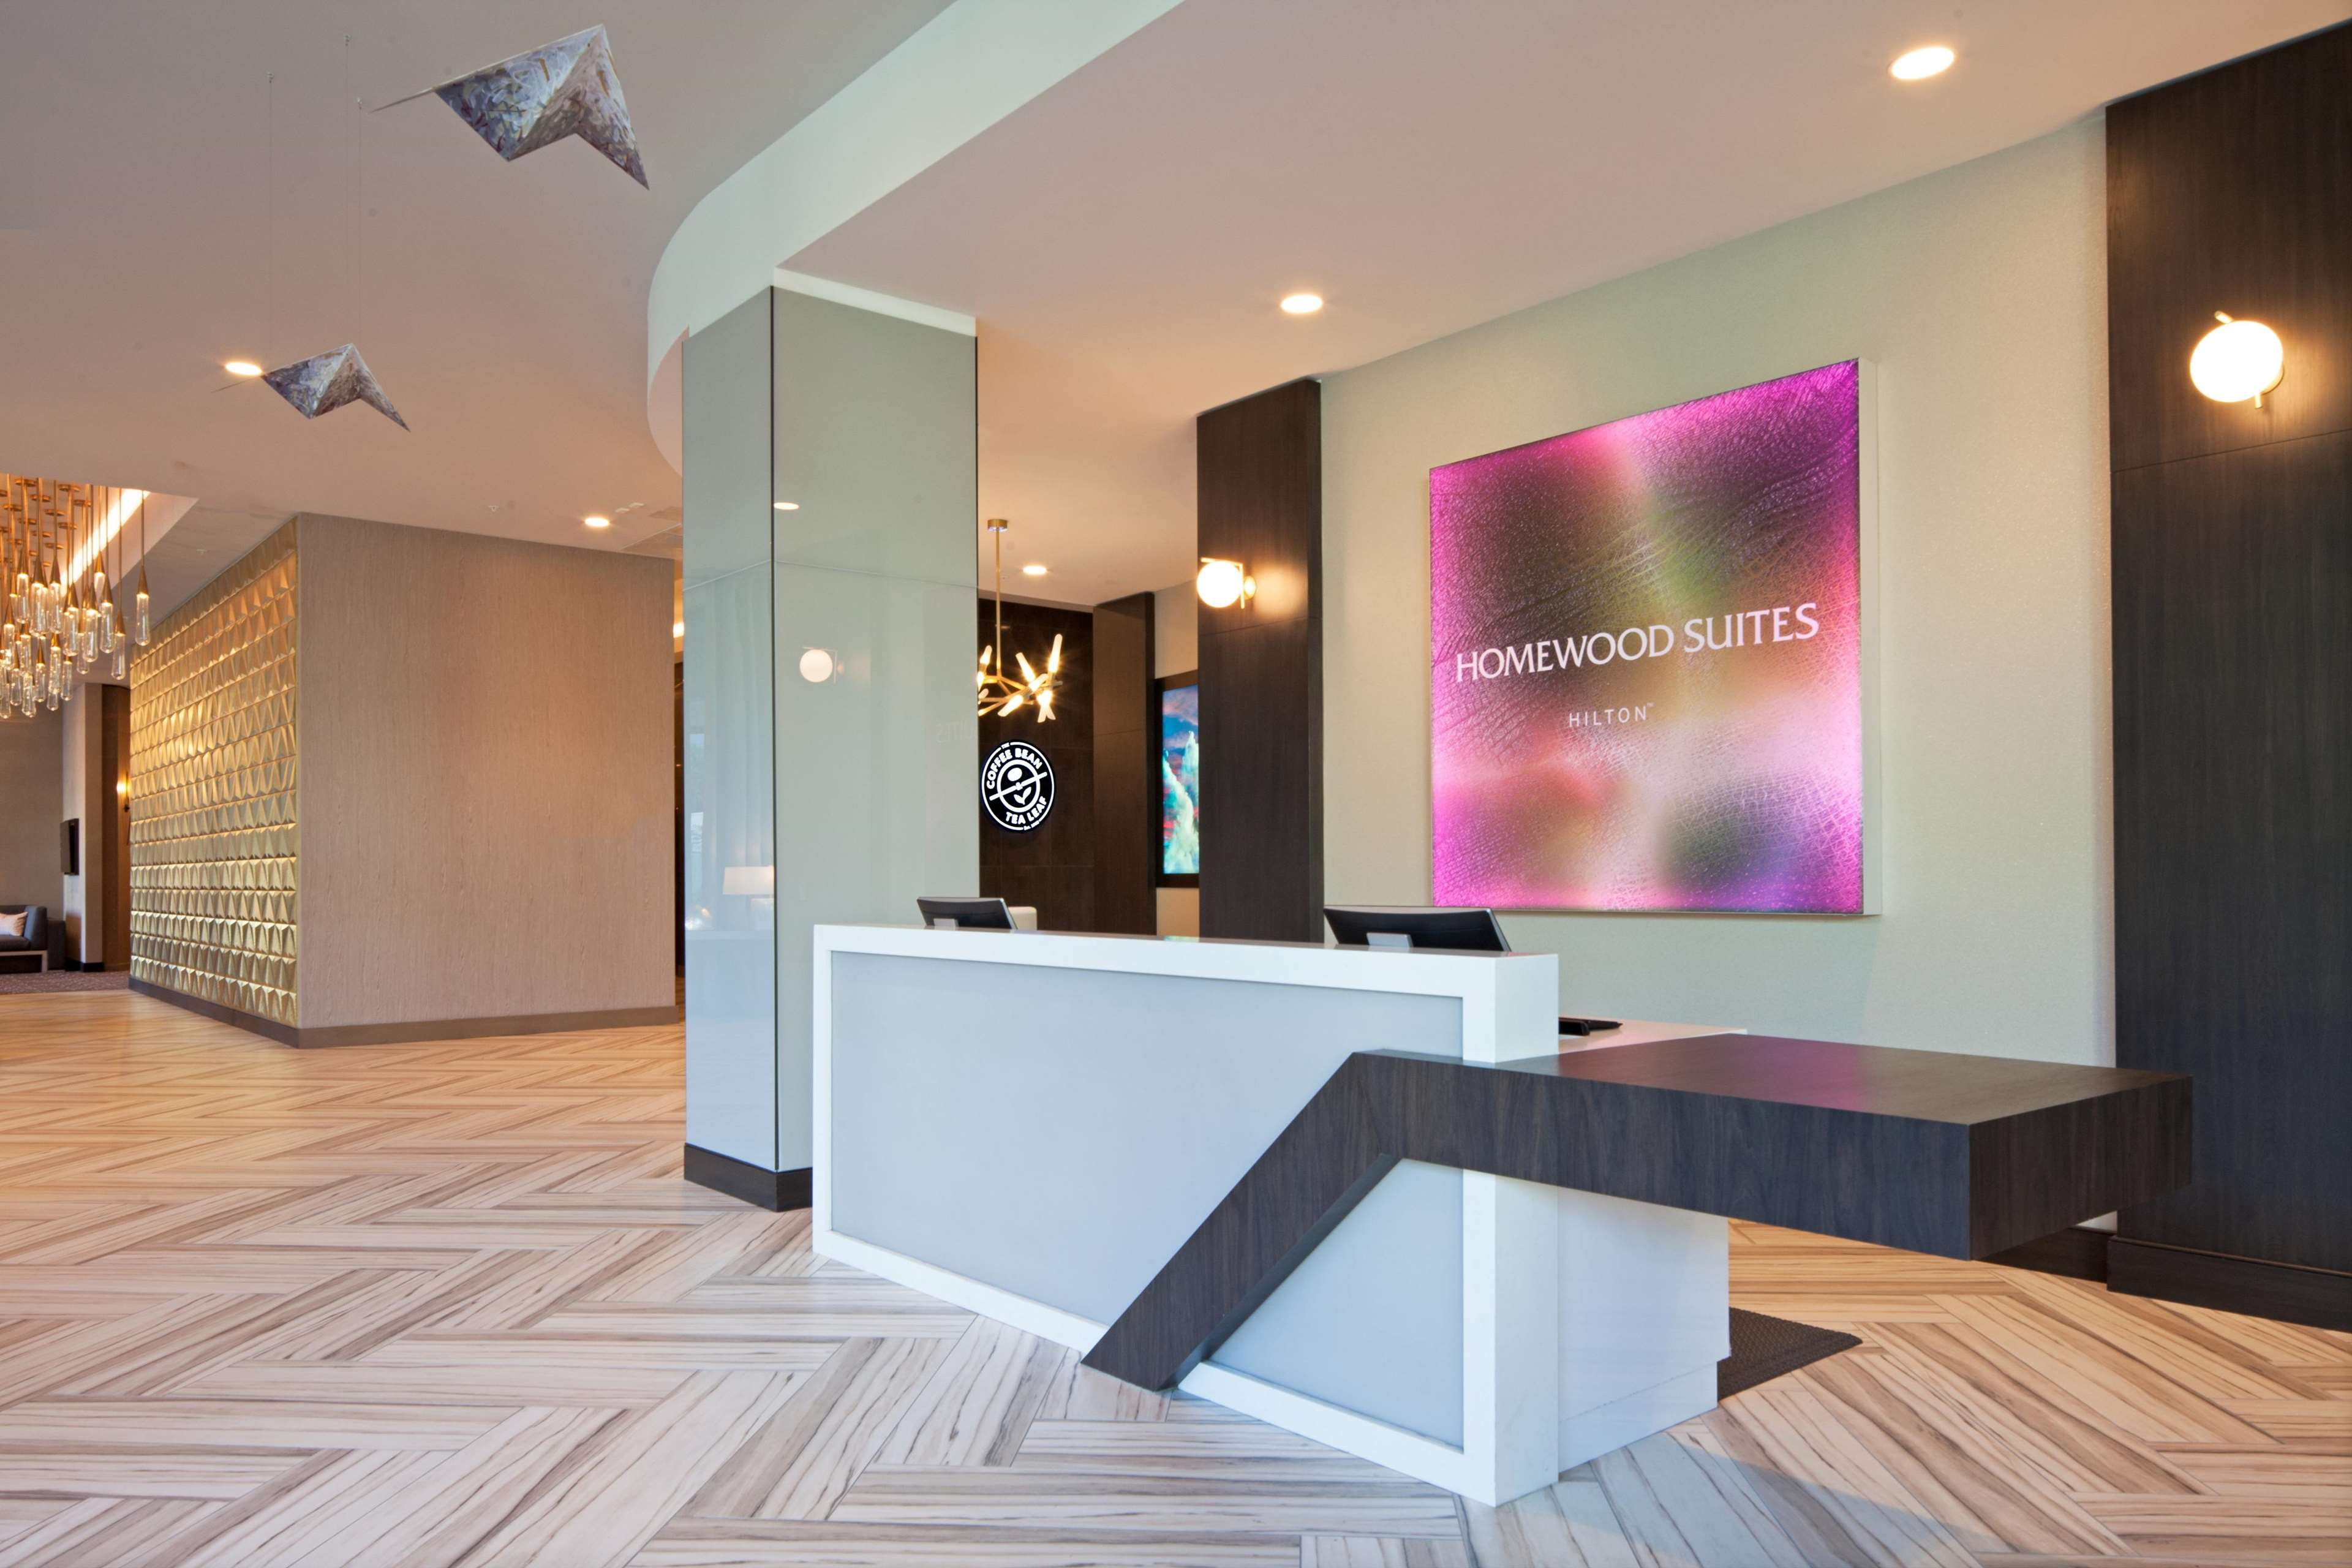 Homewood Suites by Hilton Los Angeles International Airport image 2